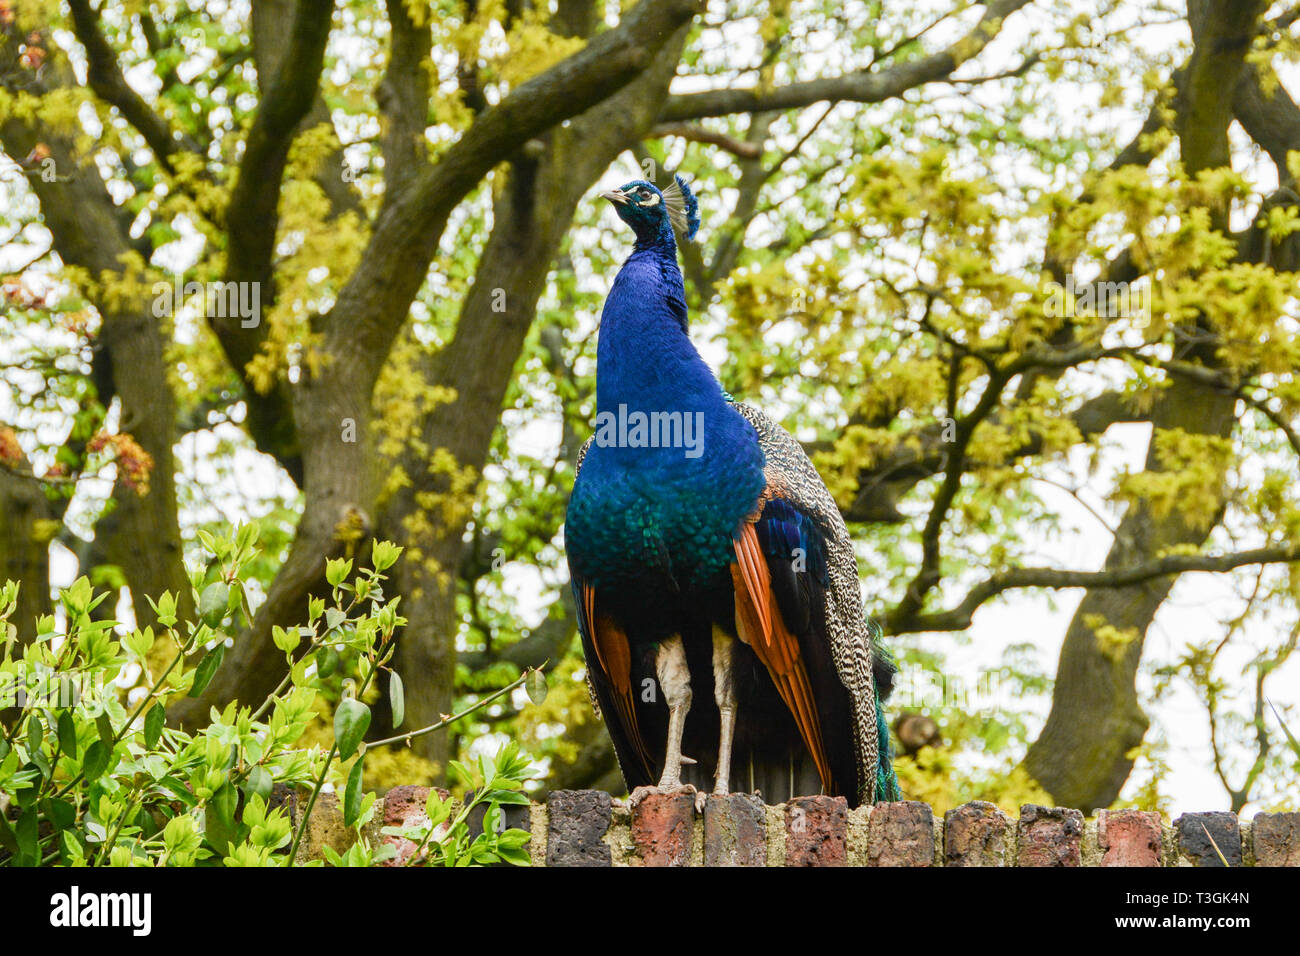 An Indian Peacock (Peafowl) sitting on a wall in Holland Park, London, UK - Stock Image